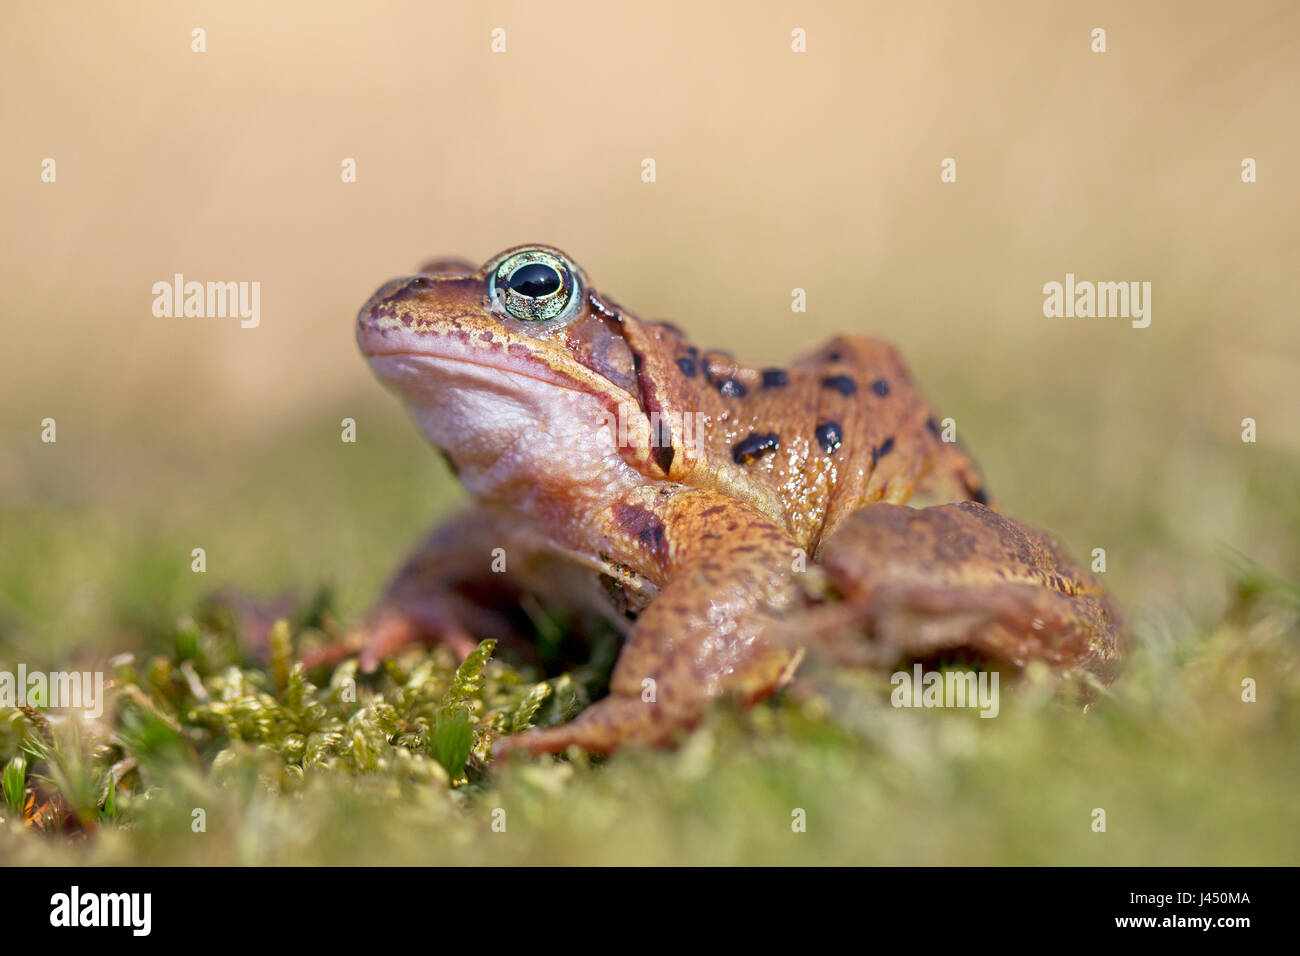 photo of a common frog Stock Photo